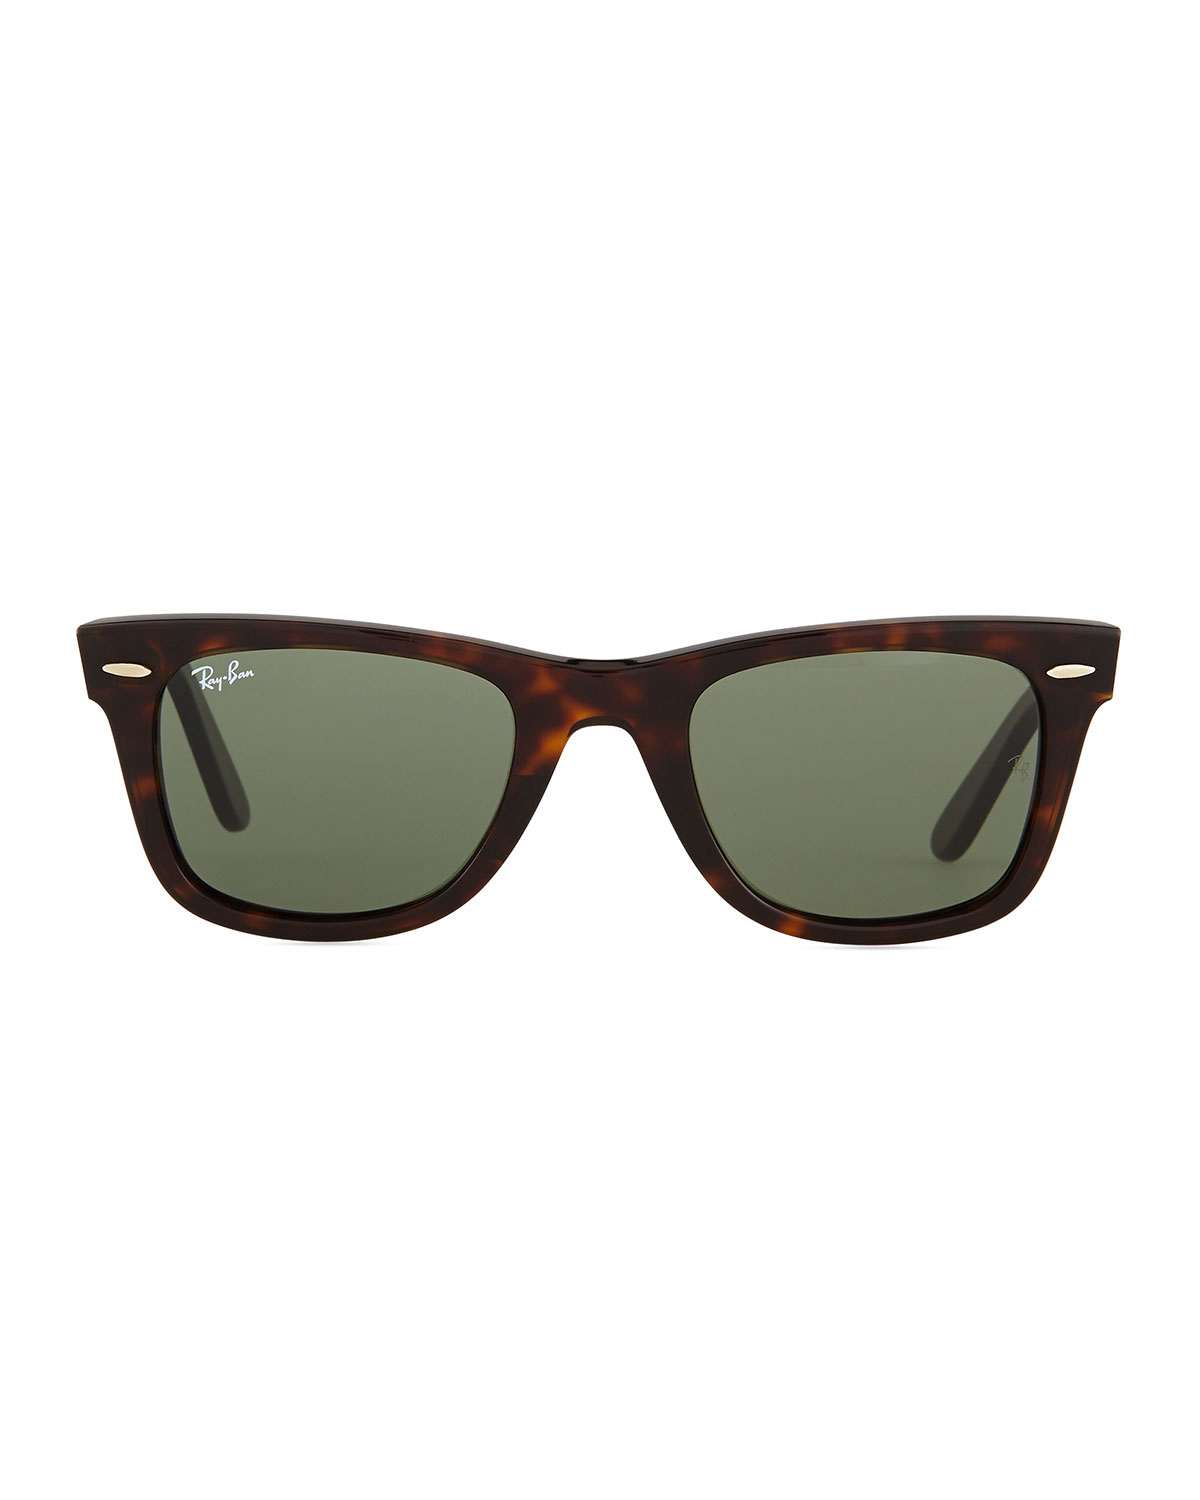 a11fa37325 Ray Ban Wayfair Tortoise Green Ray Bans « Heritage Malta